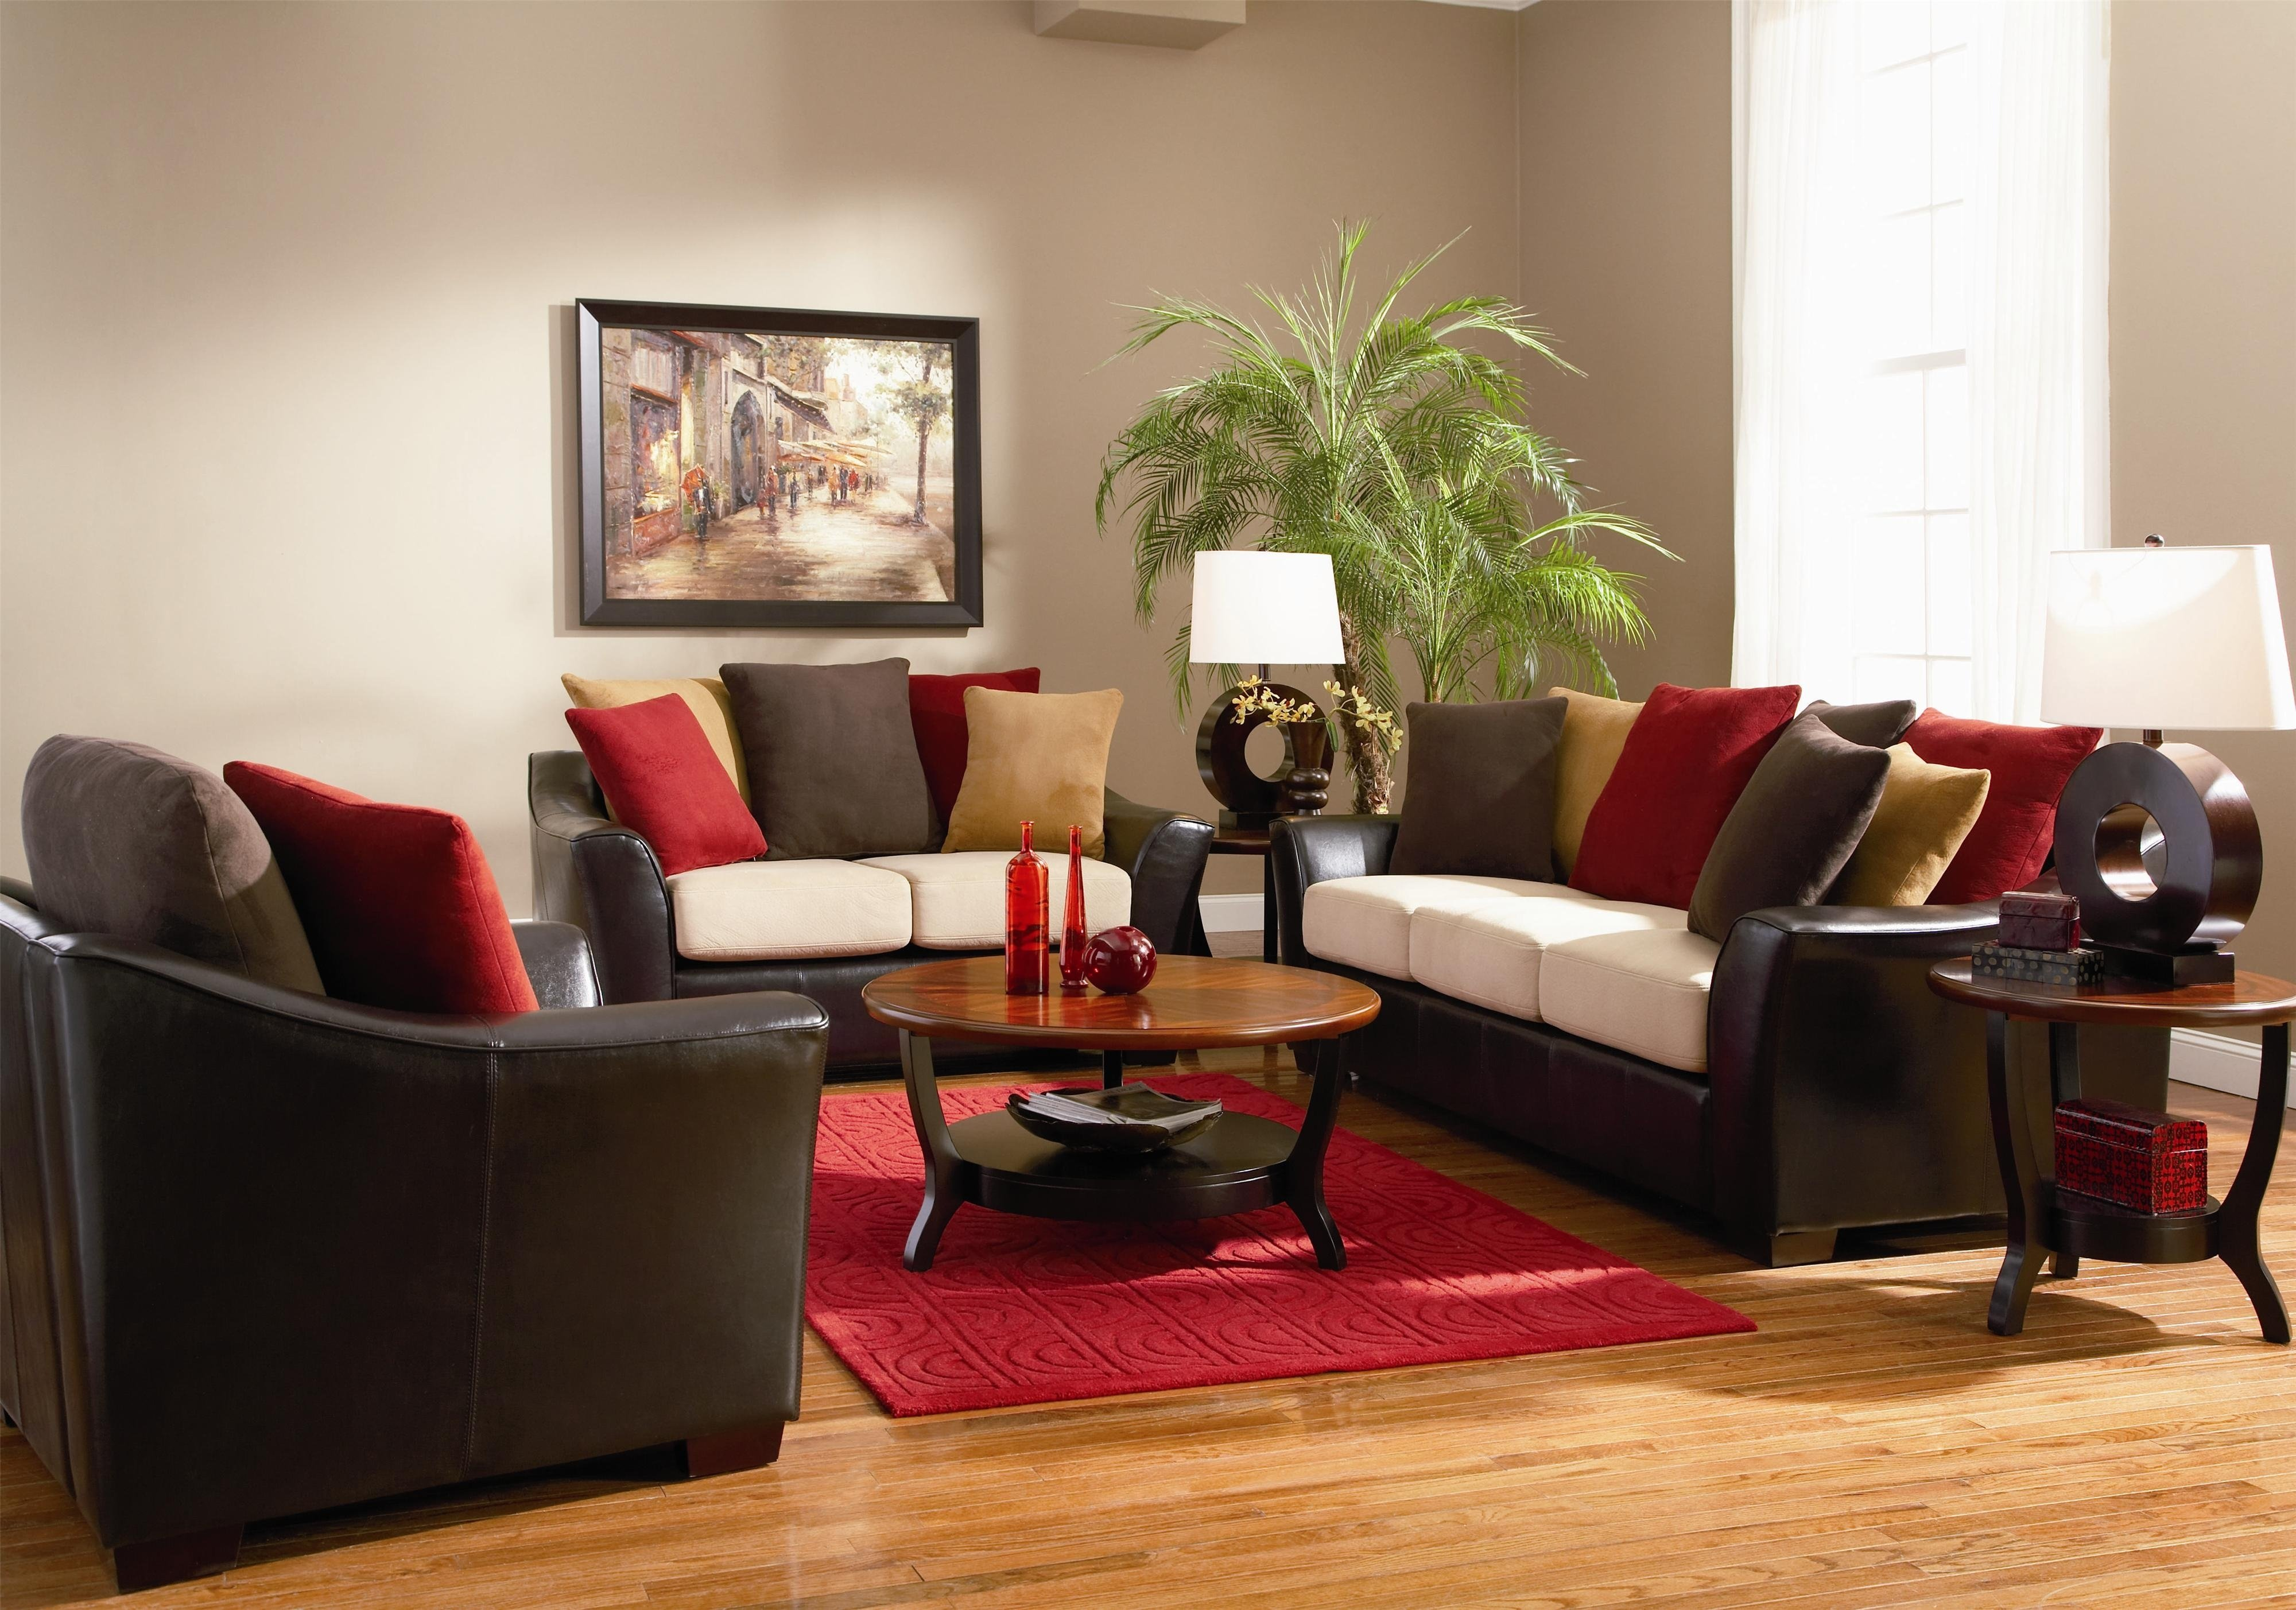 10 Best Red And Brown Living Room Ideas living room design ideas brown leather sofa artsy personalization 2020